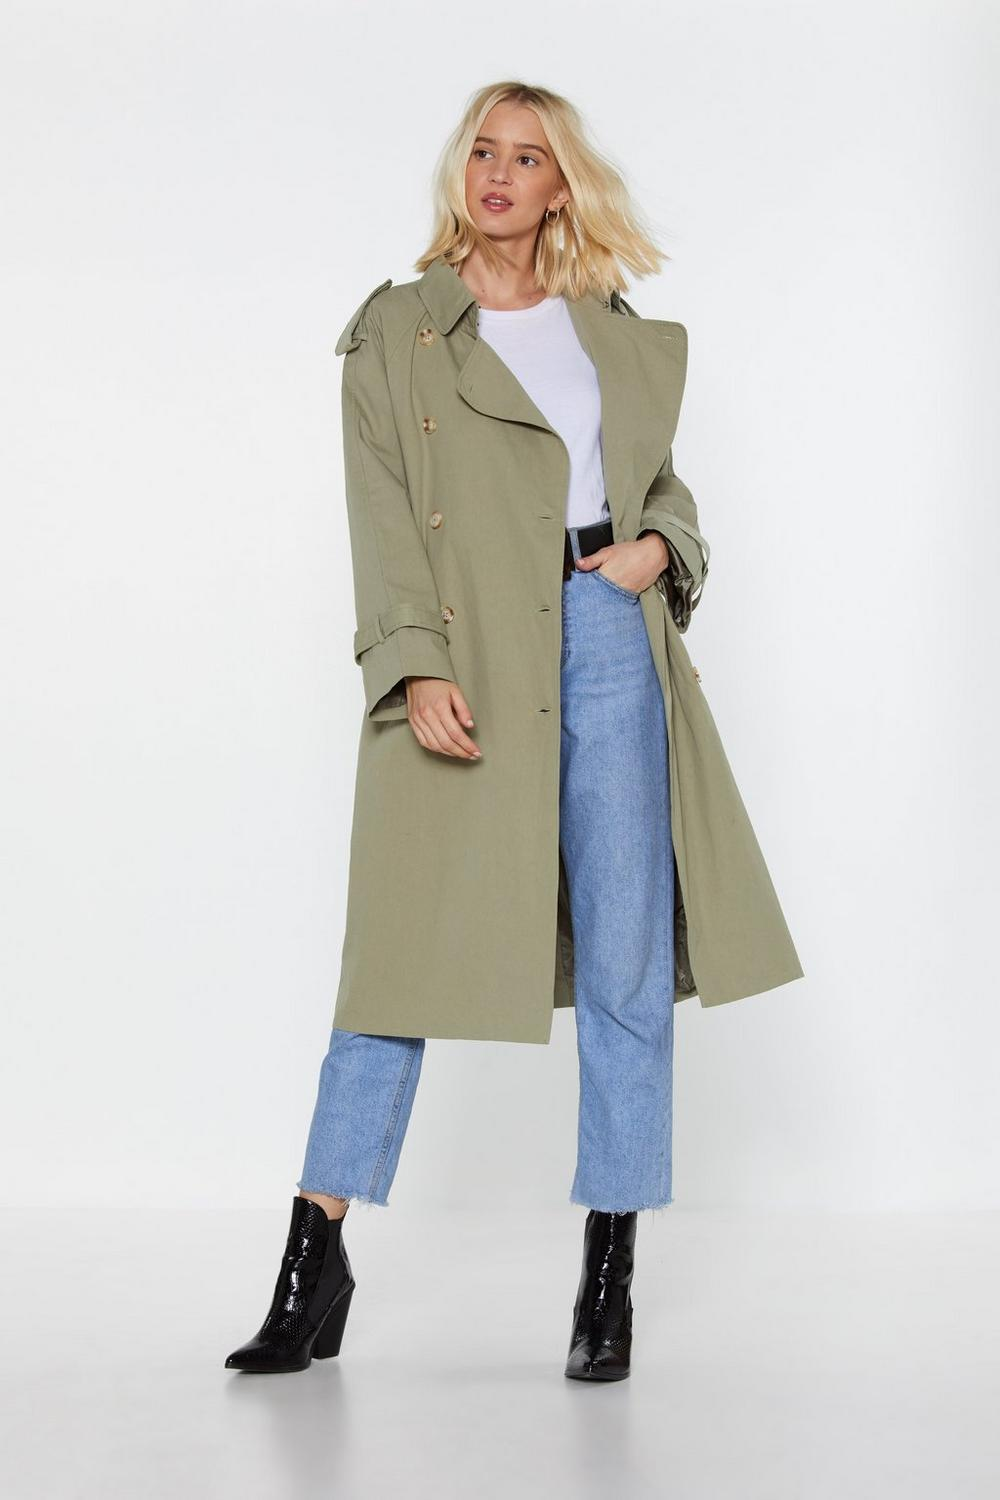 Return of the Mac Belted Trench Coat | Shop Clothes at Nasty Gal!